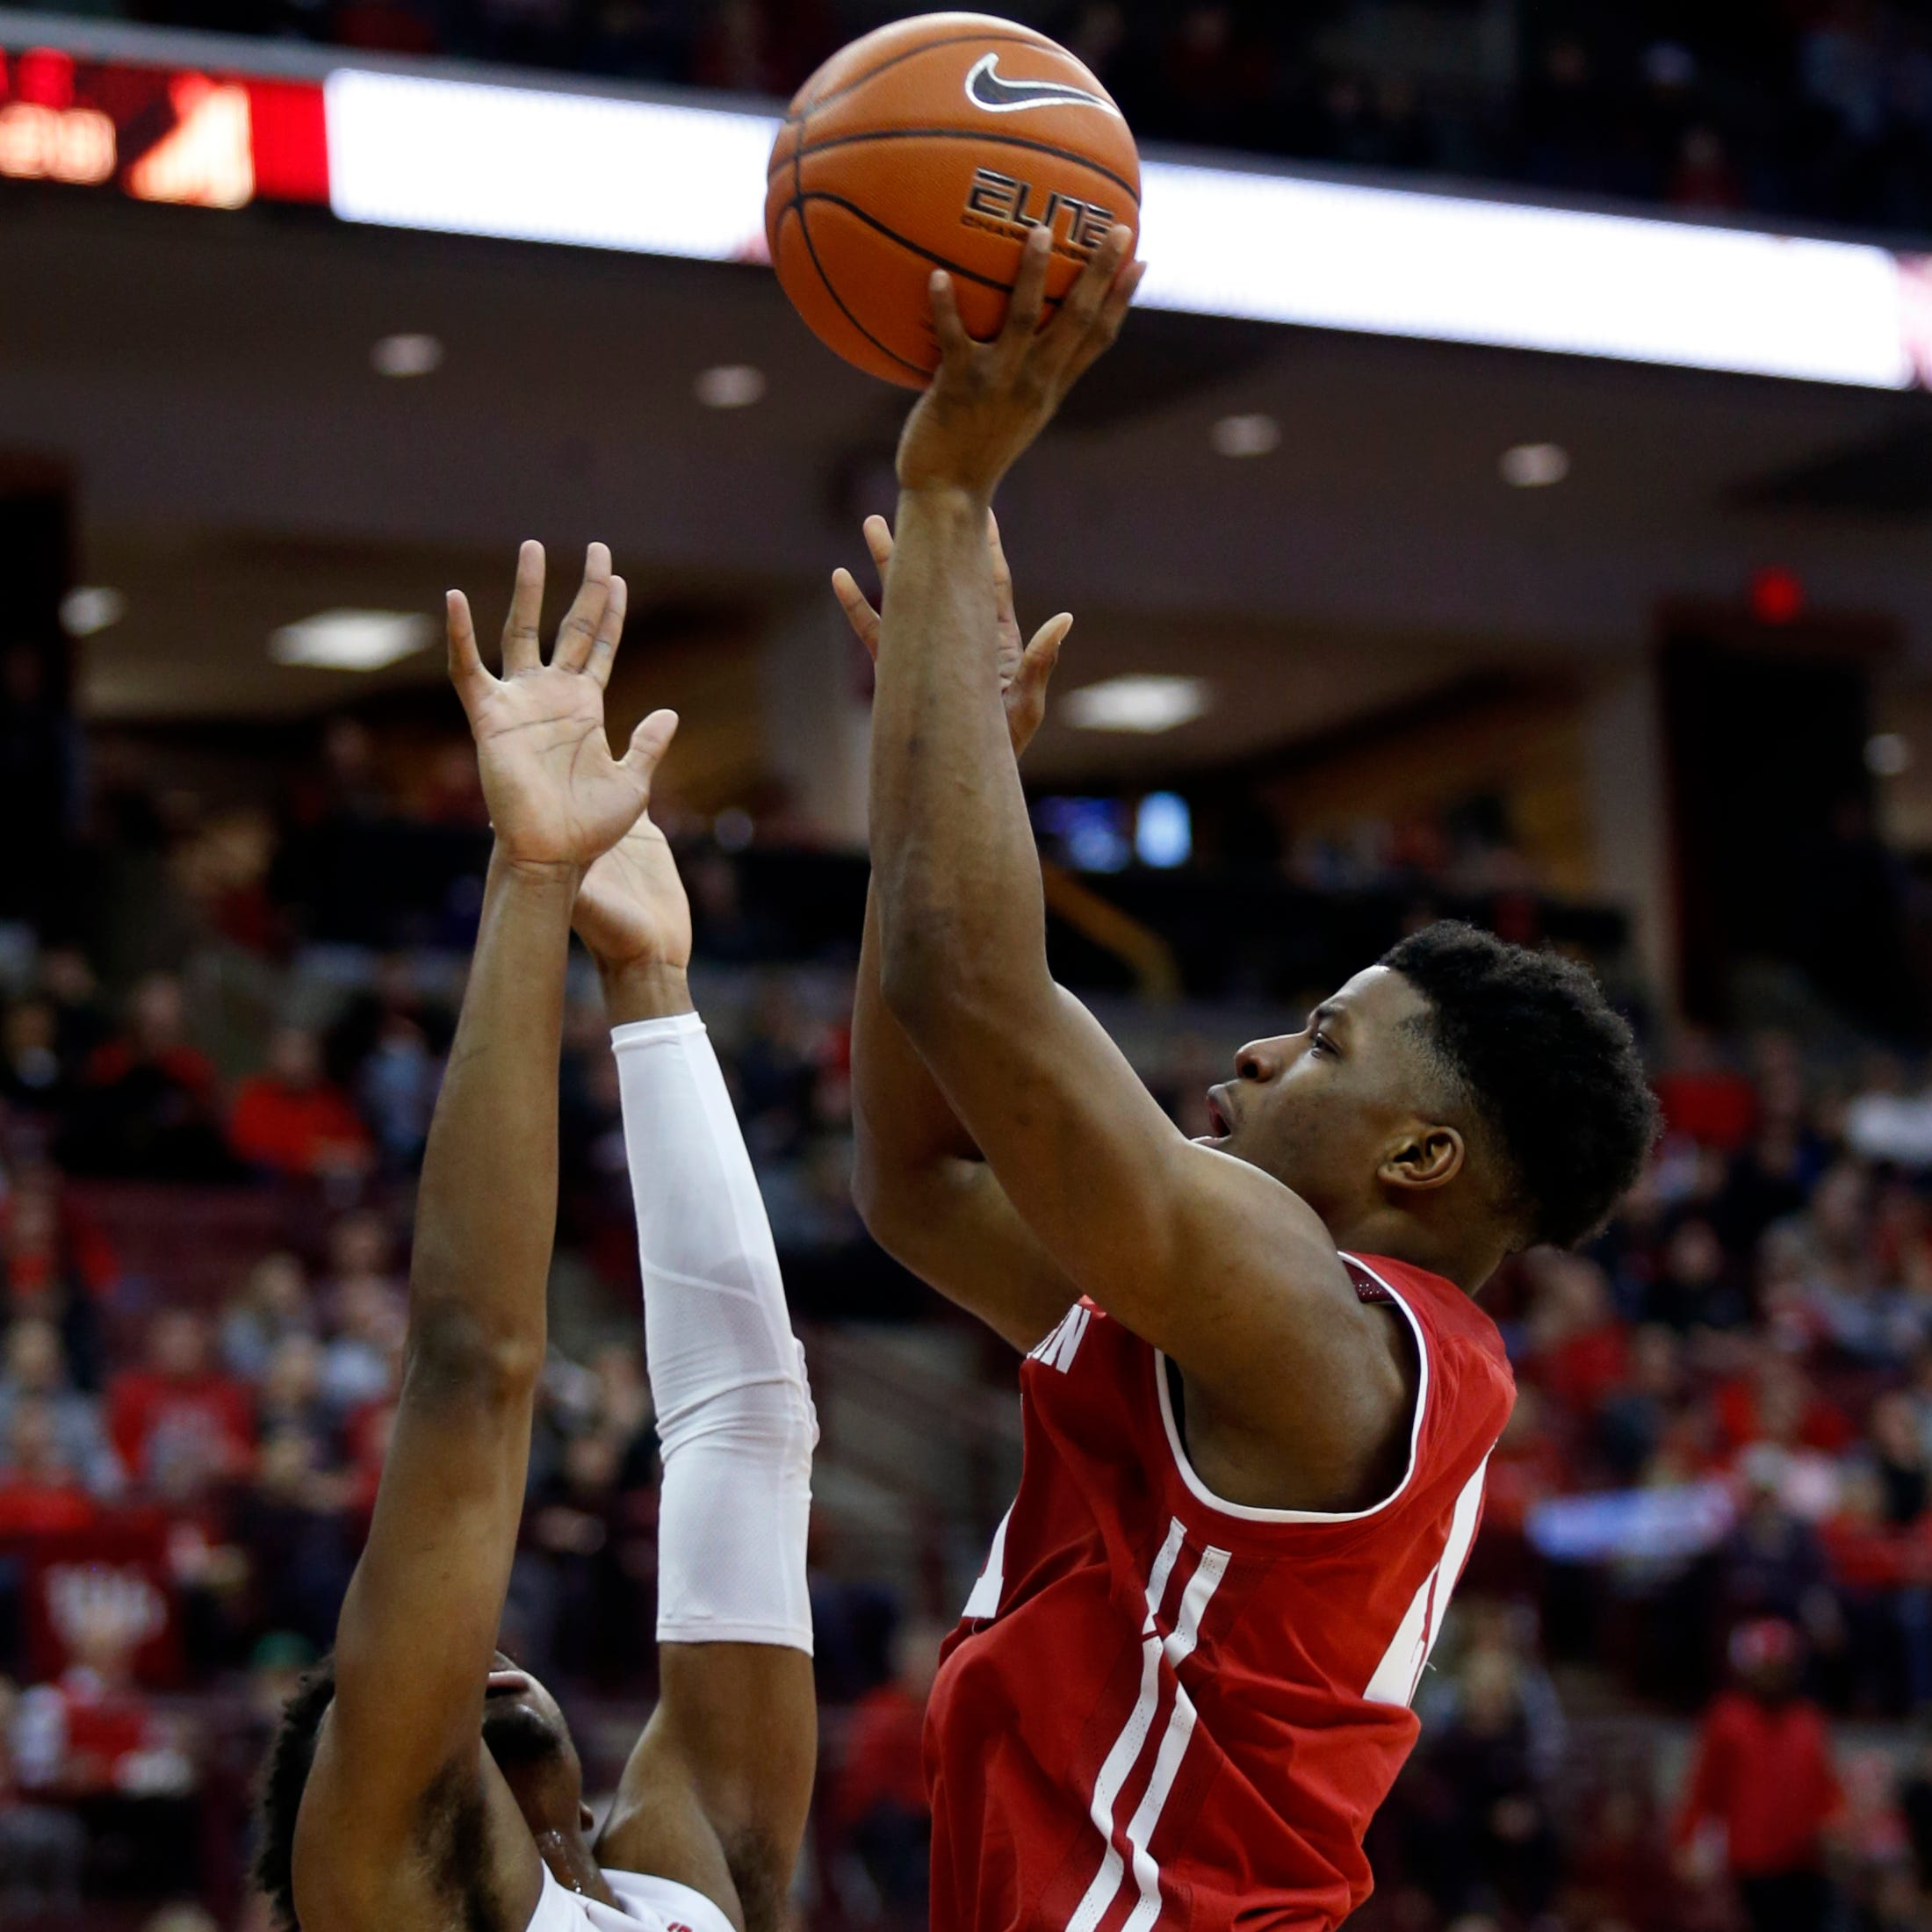 UW 73, Ohio State 67: Badgers escape with an OT victory and earn double-bye in Big Ten tournament